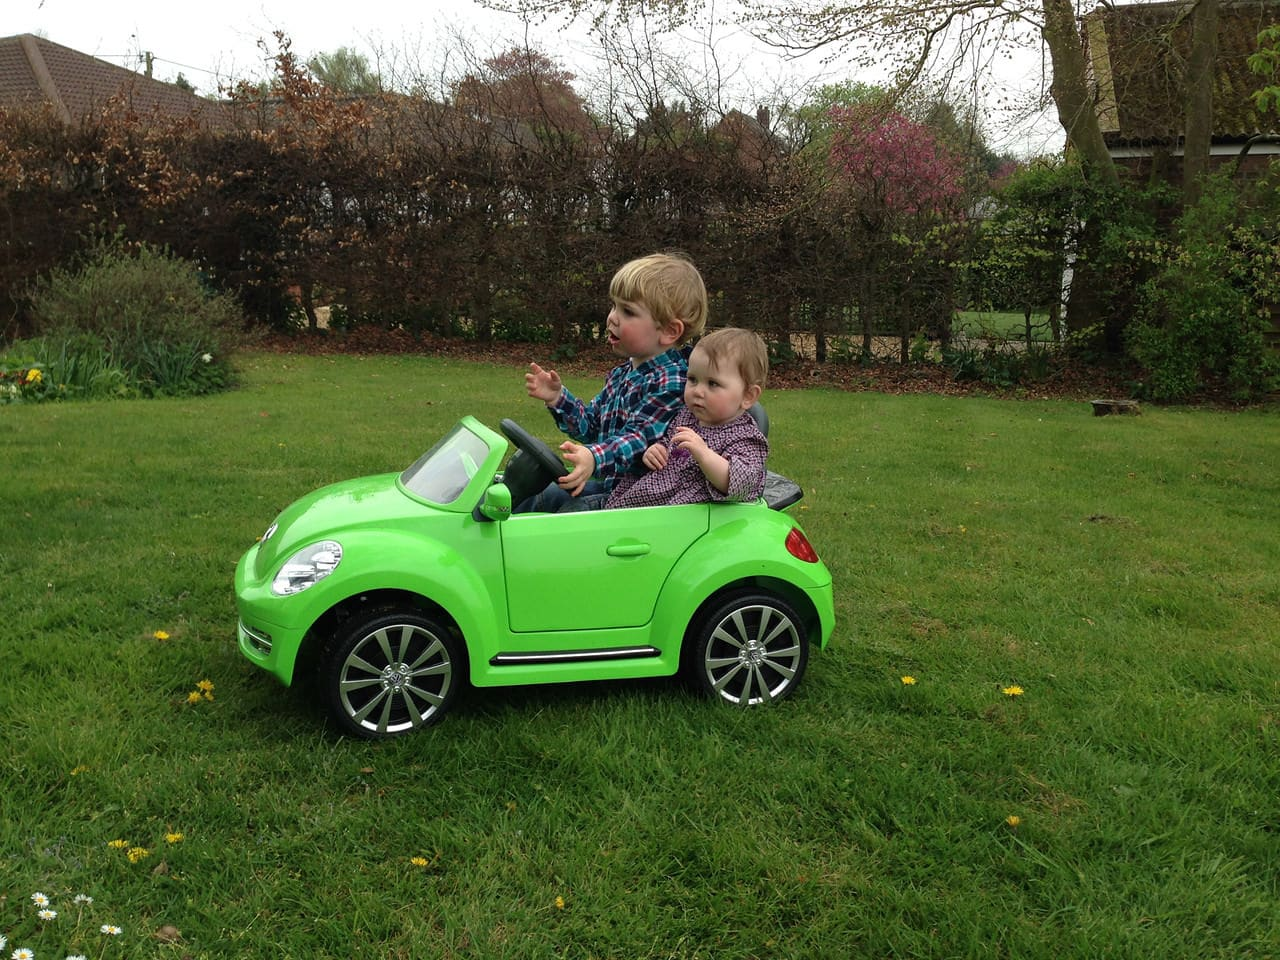 Sam & Ellie out for a quick drive!